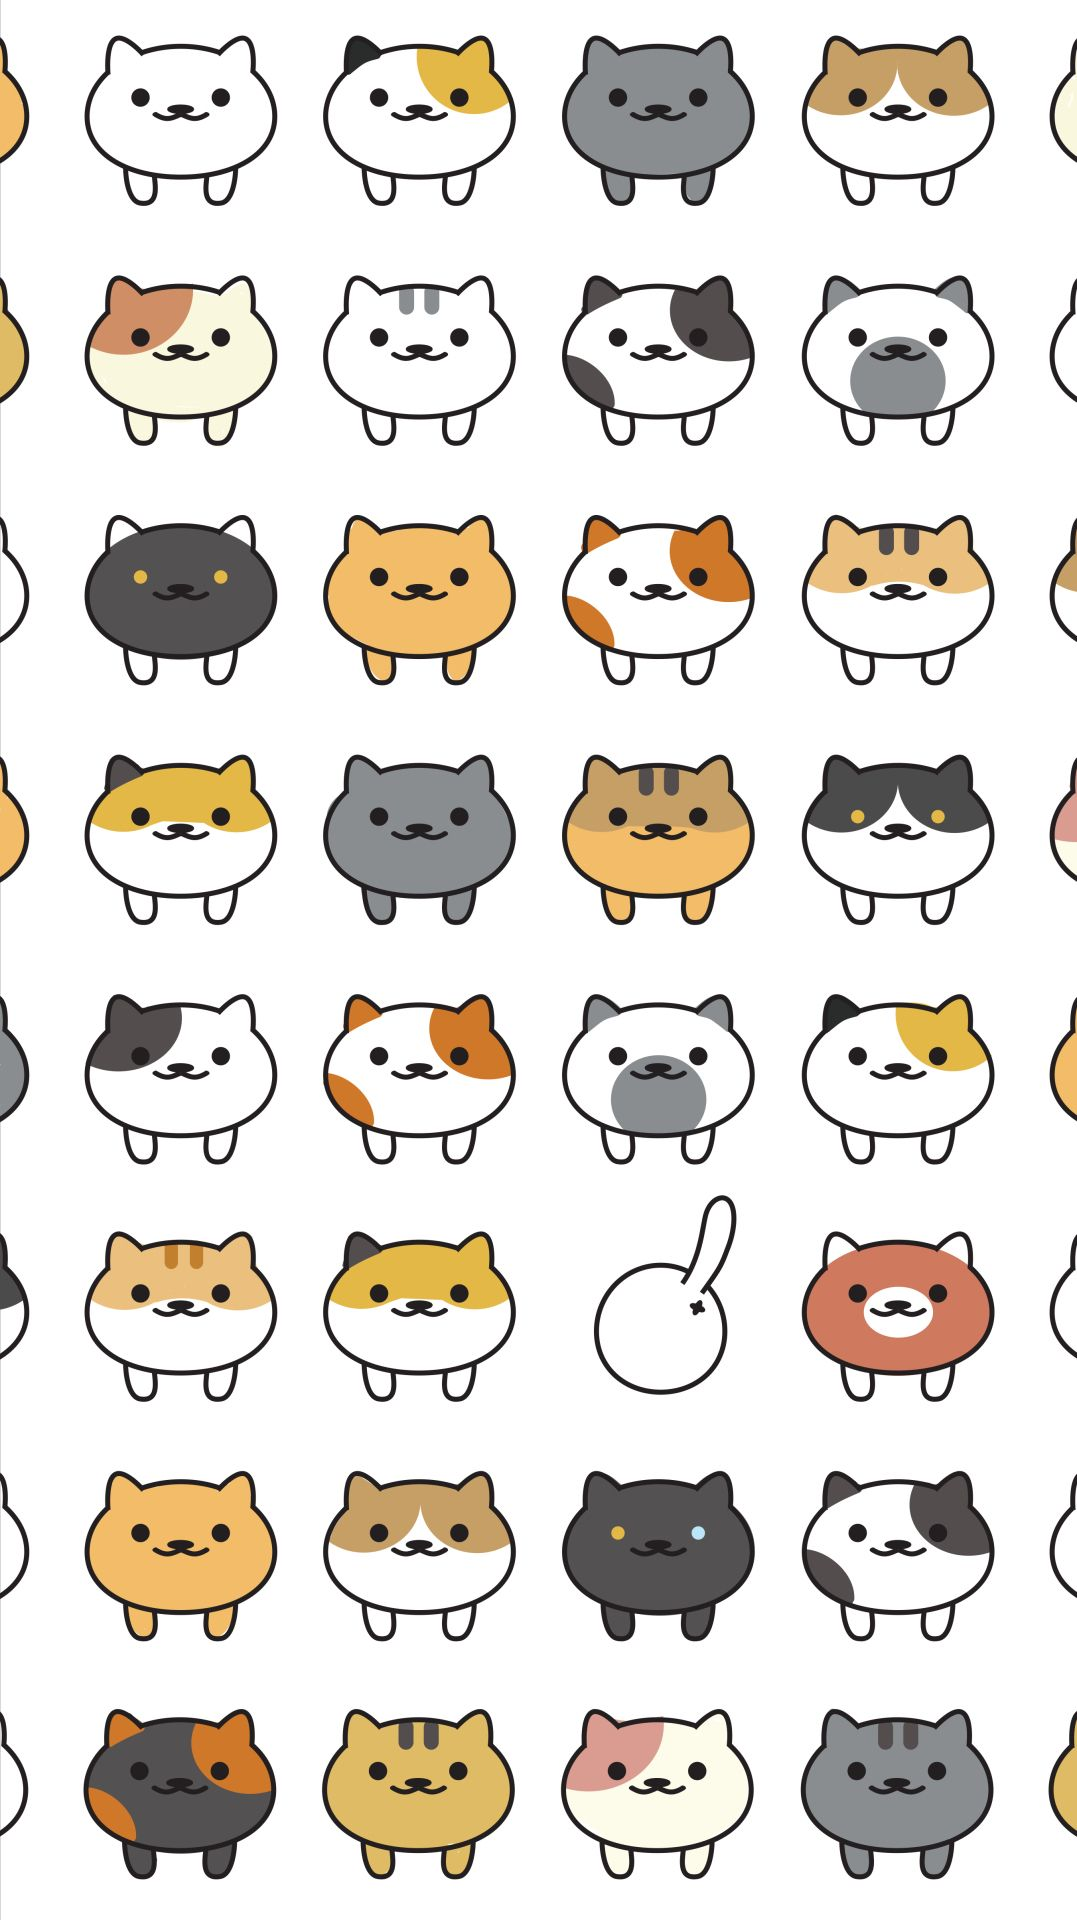 Simple Cat Wallpaper For Your Phone - 028a05044a75406f73a19fca2d15f2ec  Gallery_659679 .jpg